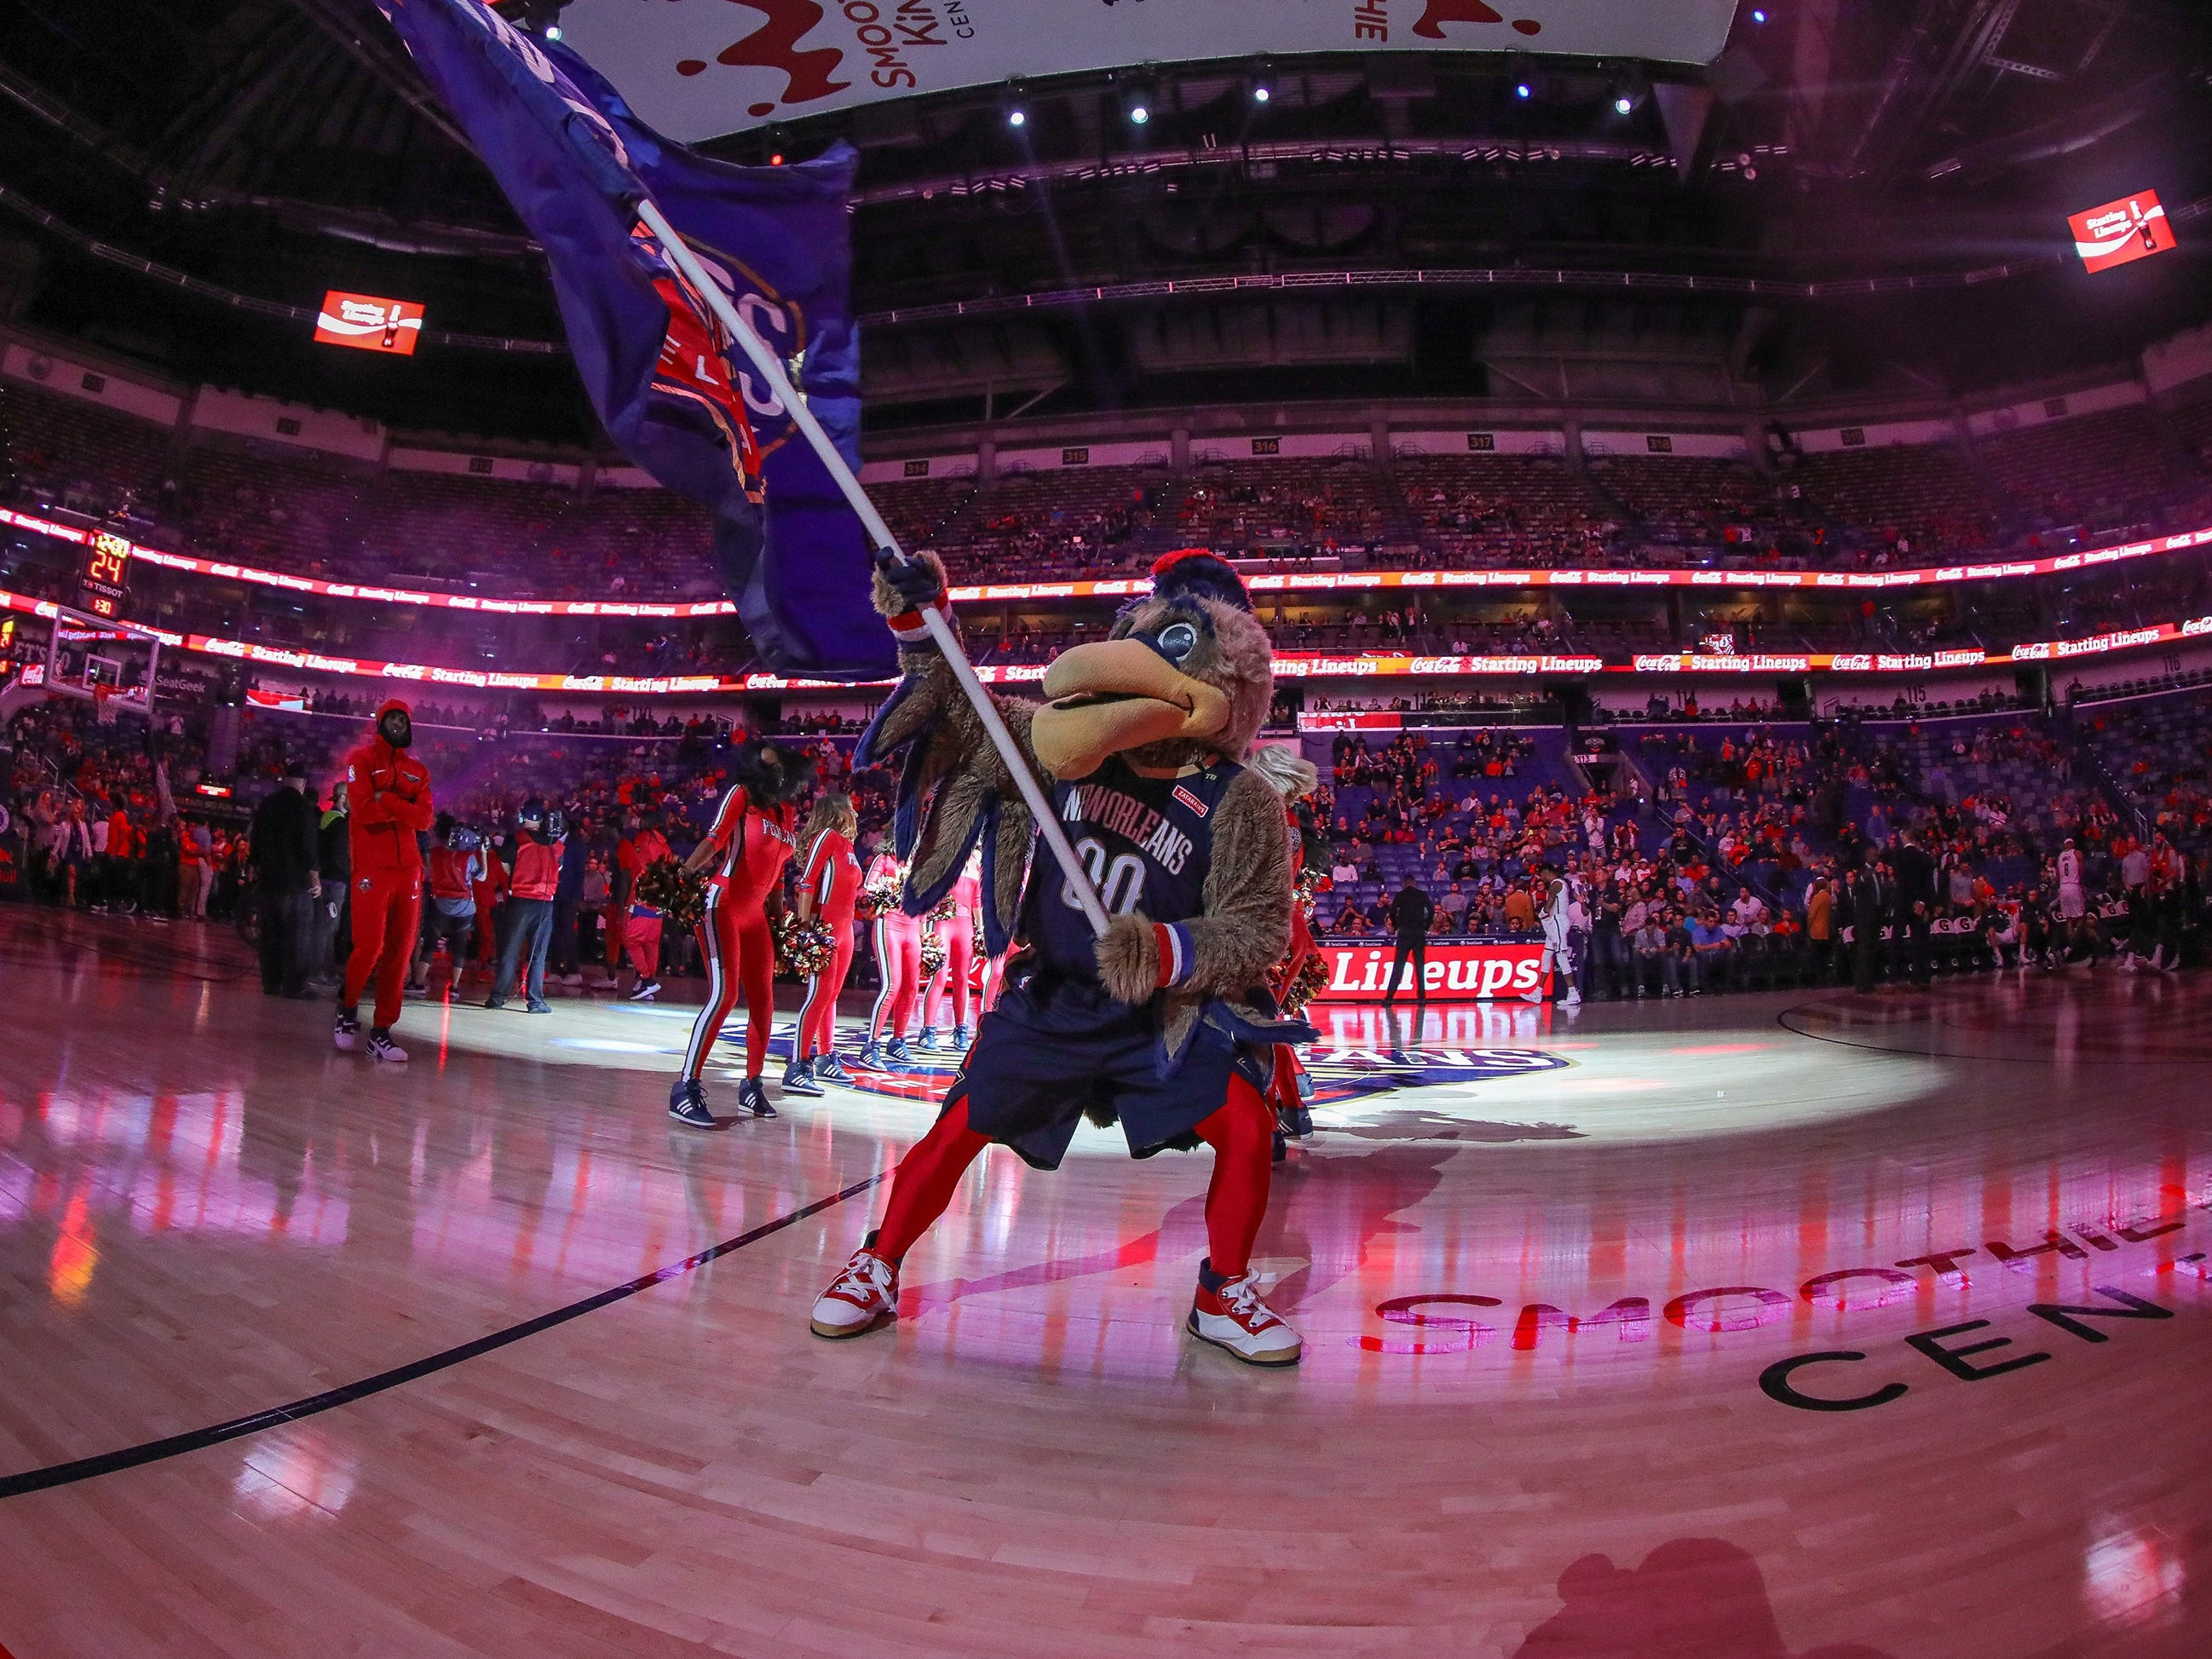 Oct. 26: Pelicans mascot Pierre pumps up the fans before playing the Nets.